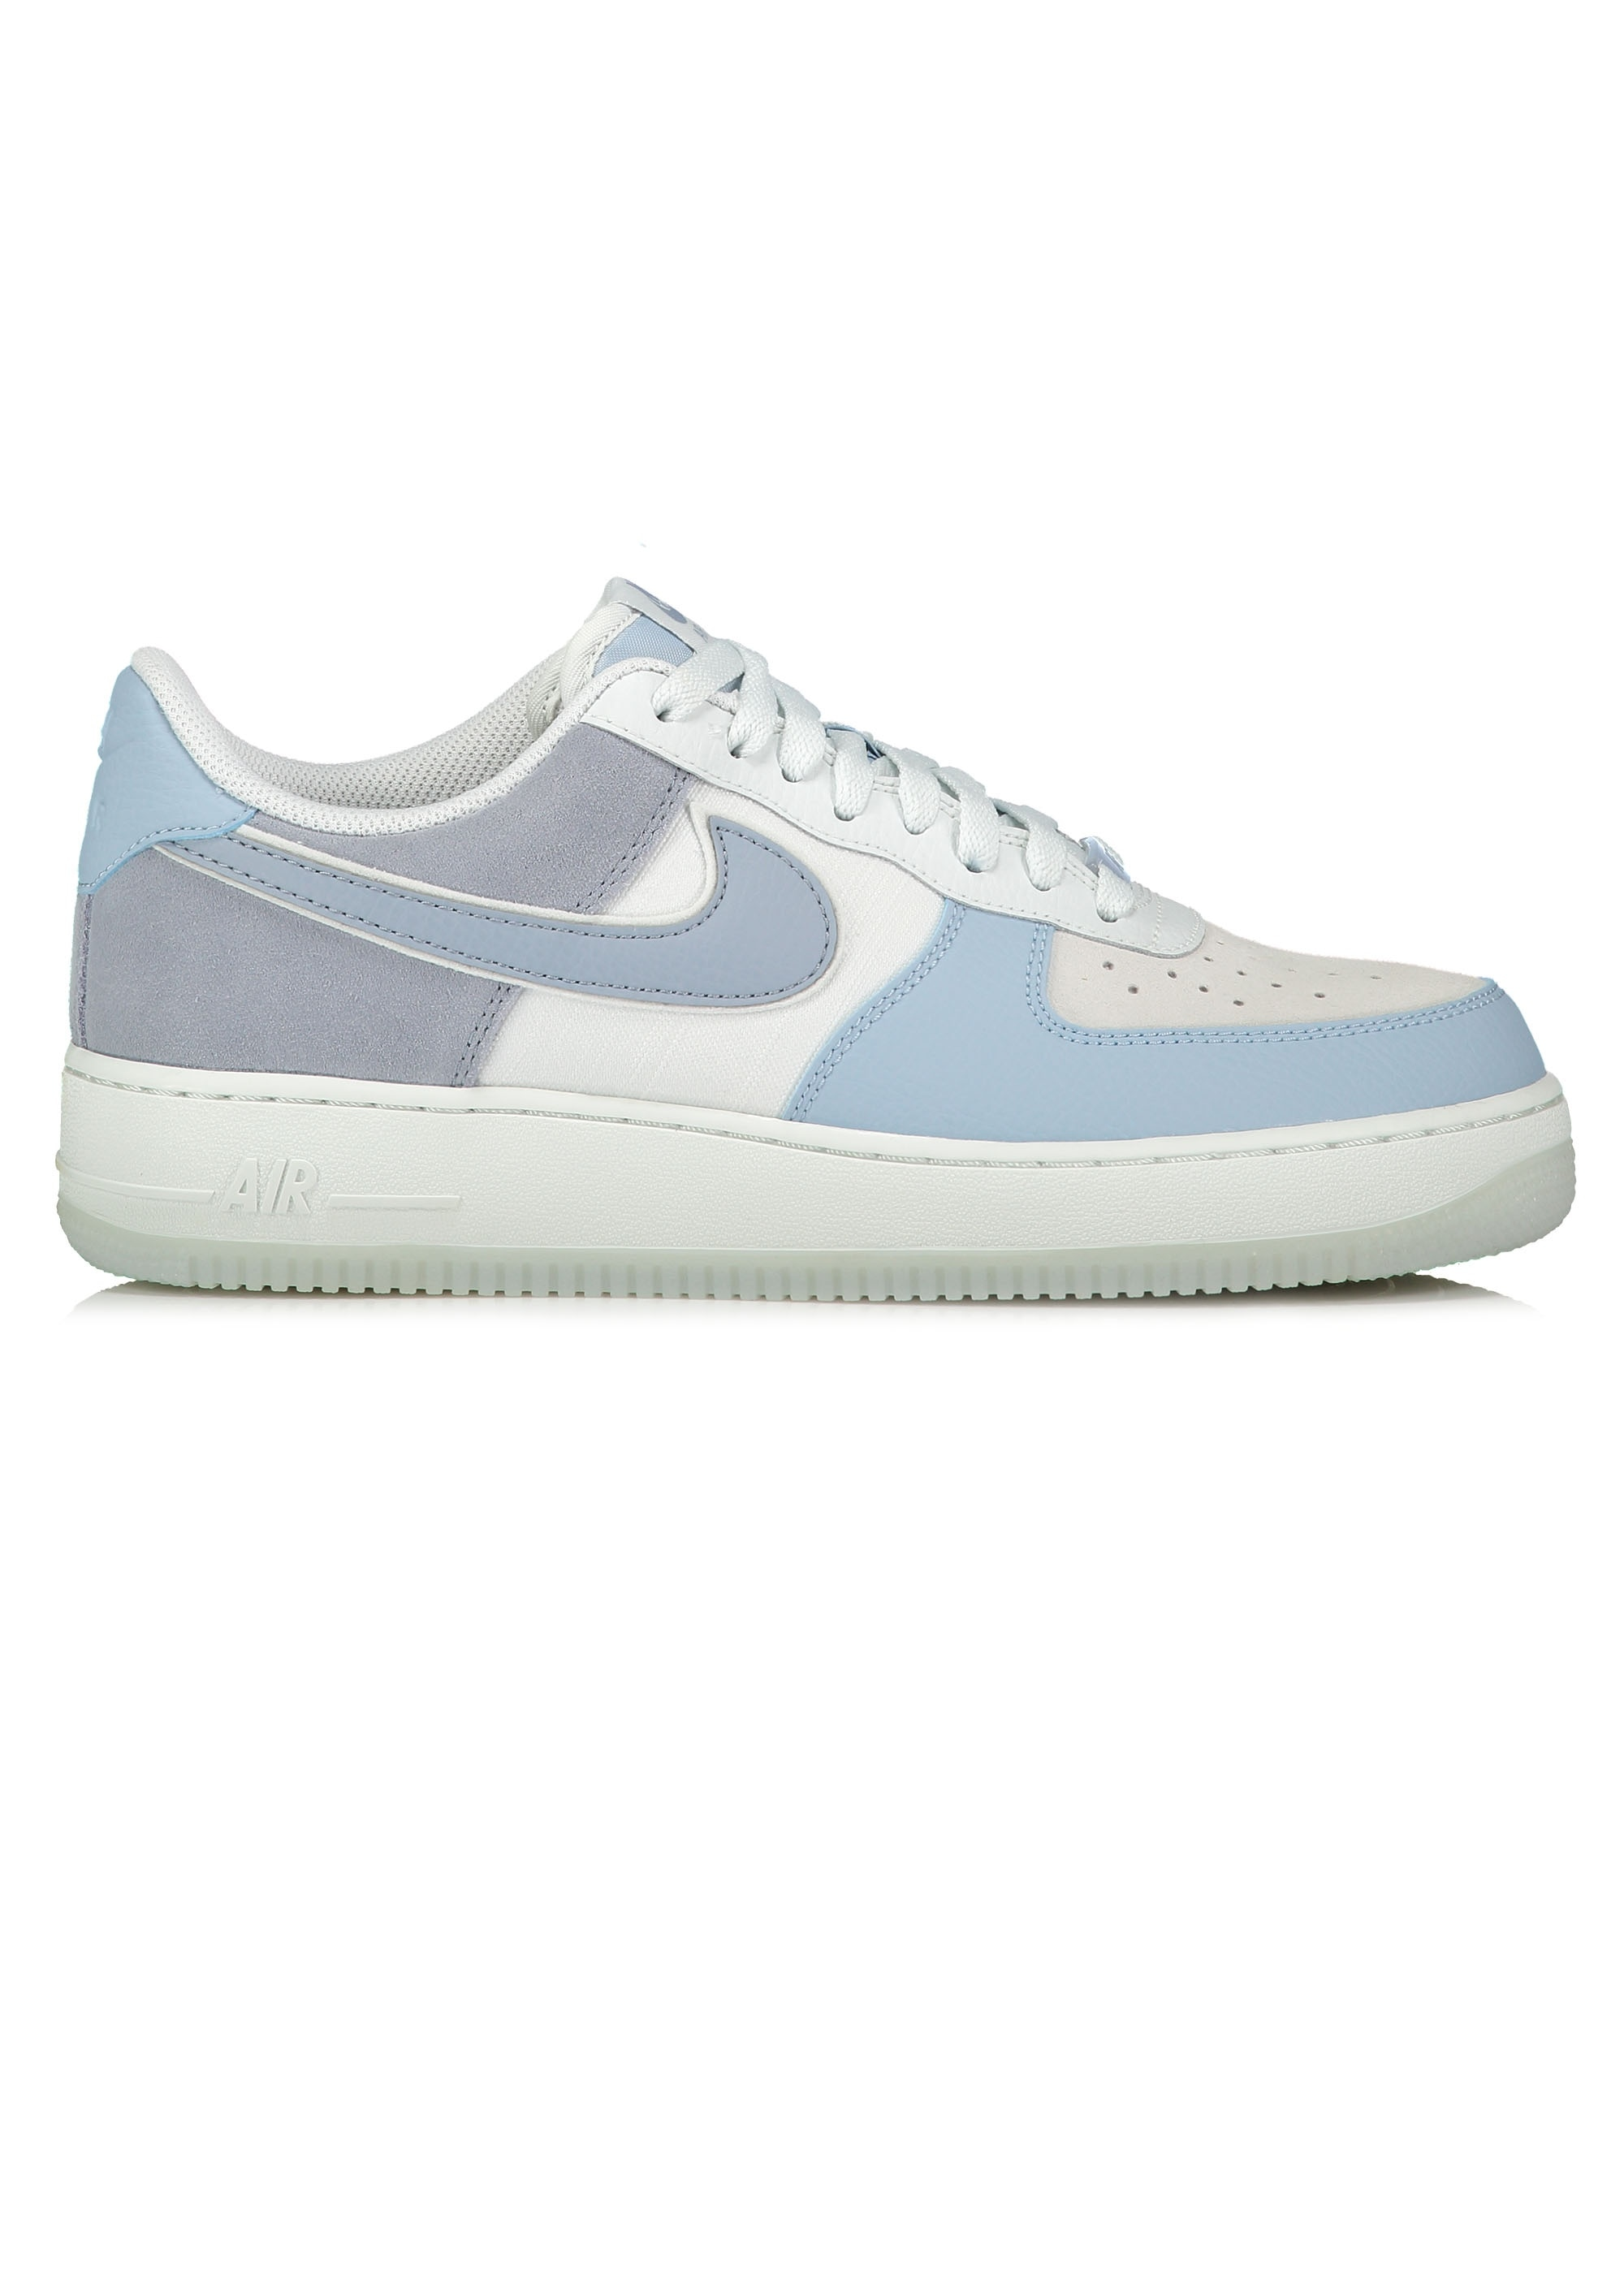 best place quality design 100% authentic Nike Footwear Air Force 1 07 LV8 2 - Armory Blue